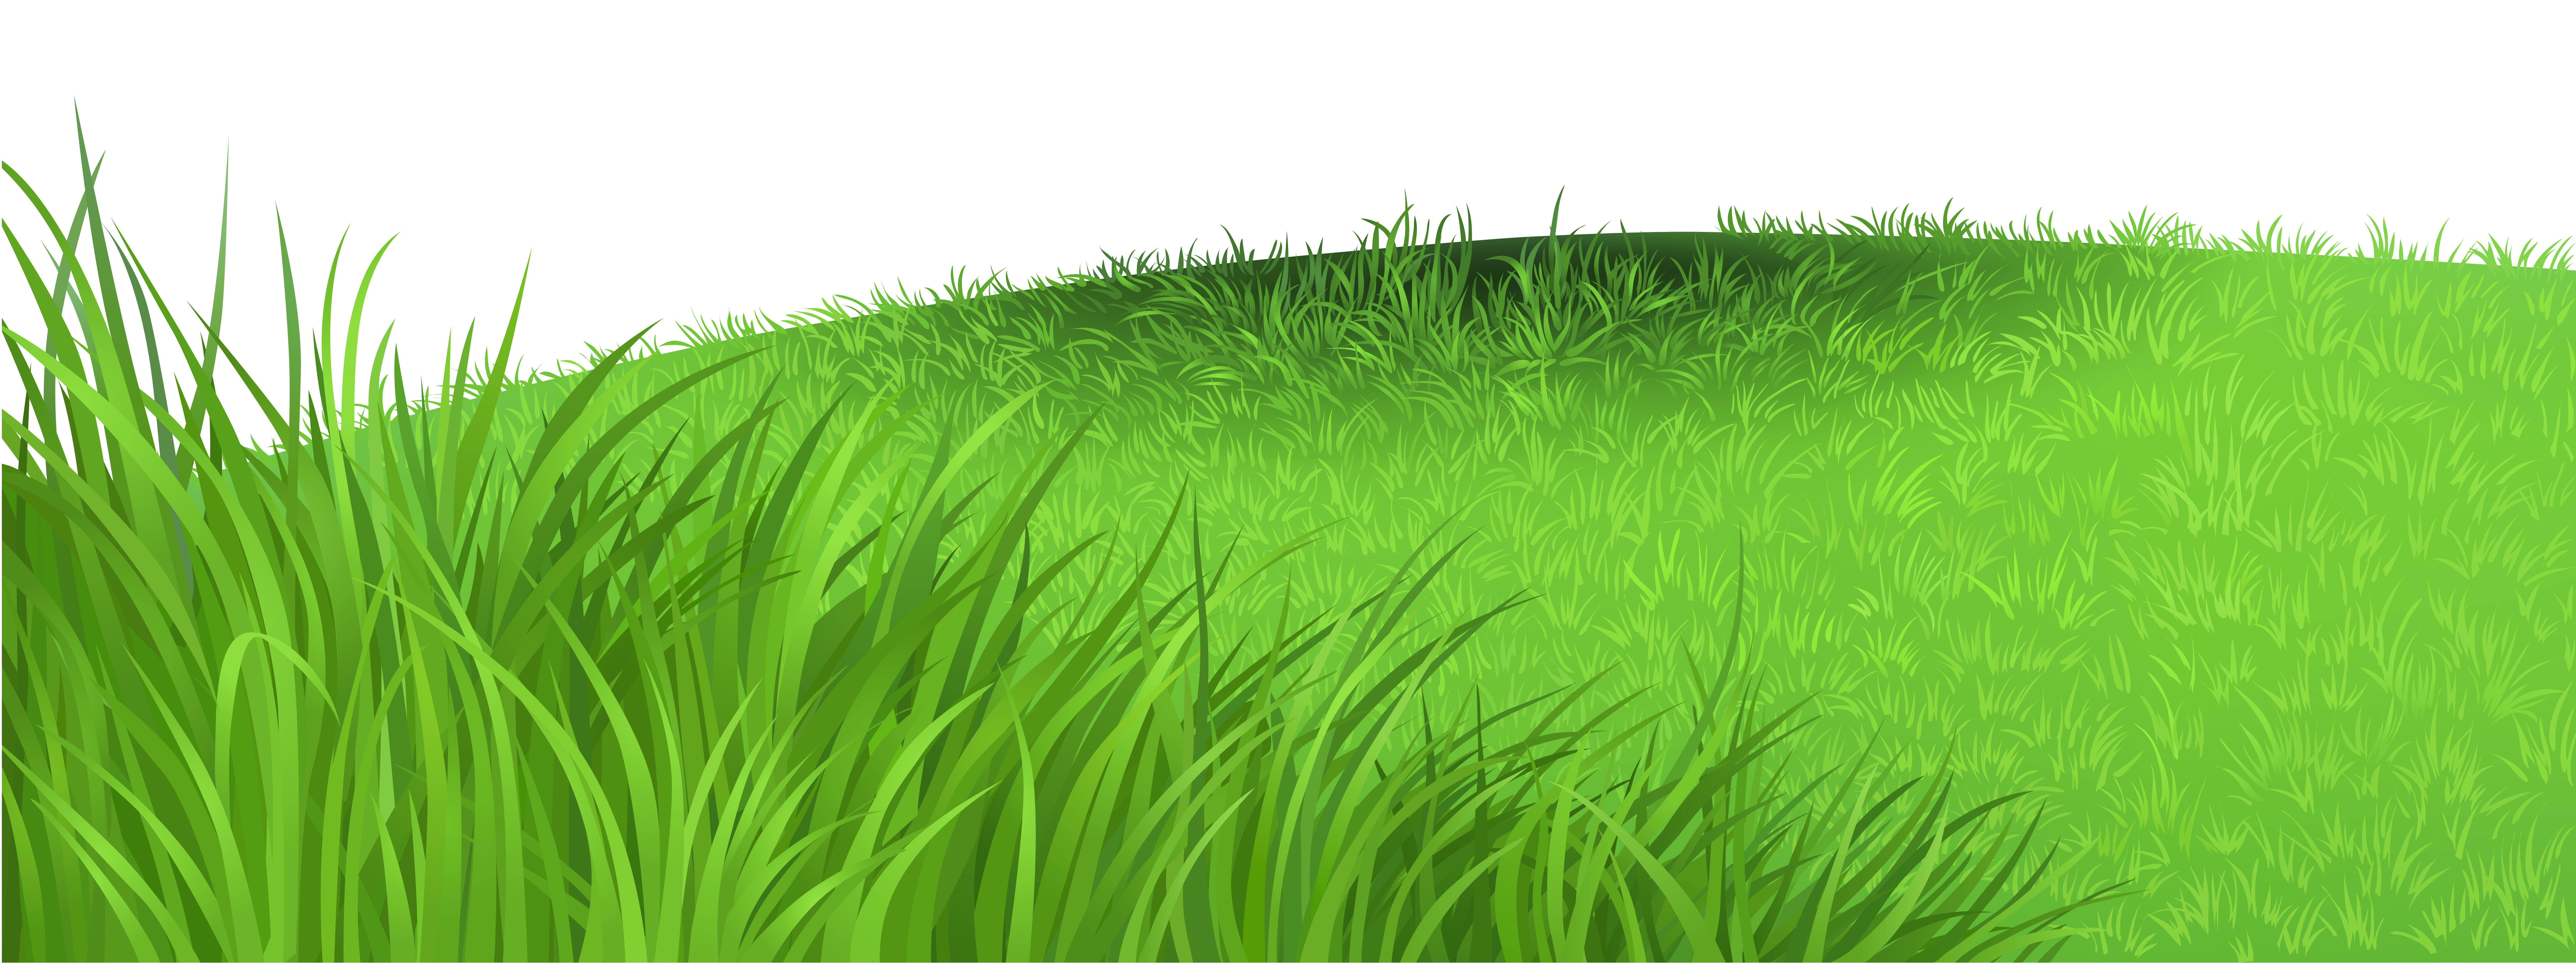 Patch of dirt in tall grass clipart picture black and white stock Ground clipart grass patch, Ground grass patch Transparent ... picture black and white stock